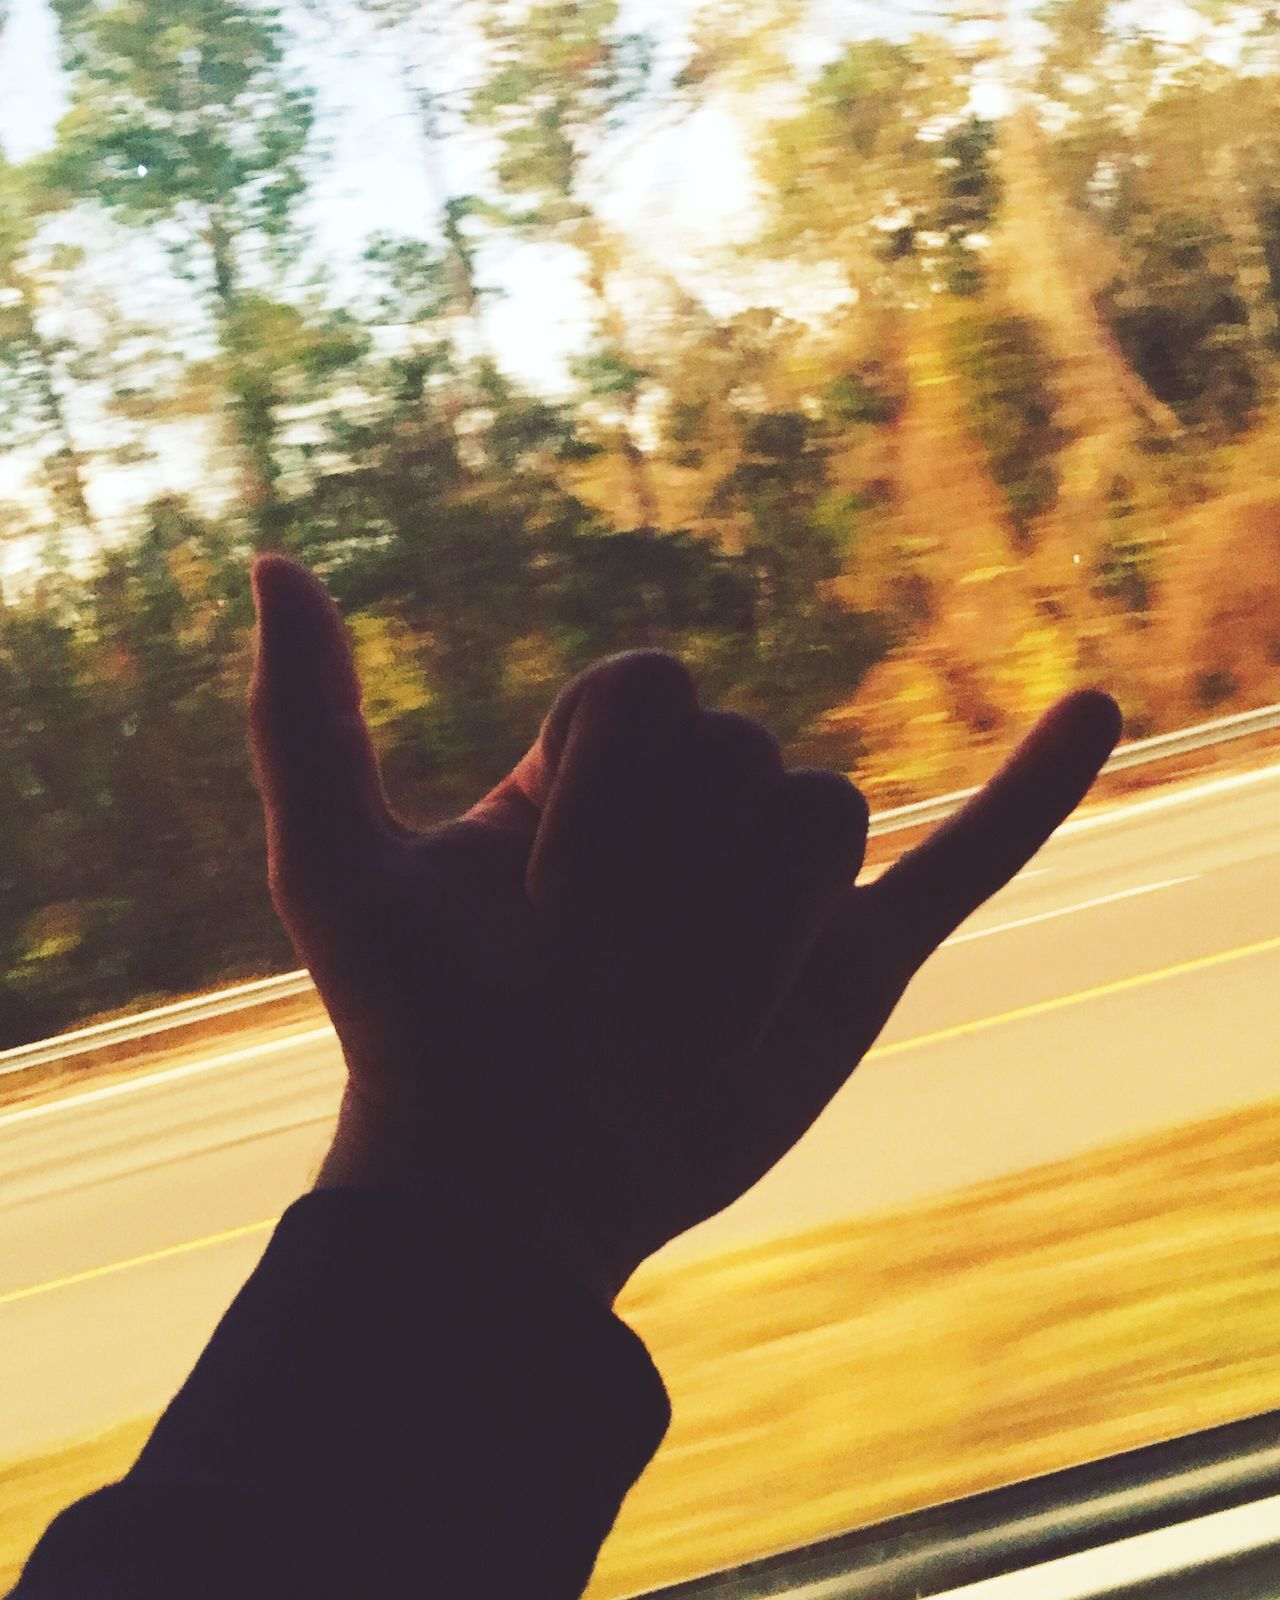 You can find peace where ever you go. Human Hand Tree Nature Close-up Sunlight Gesturing Window